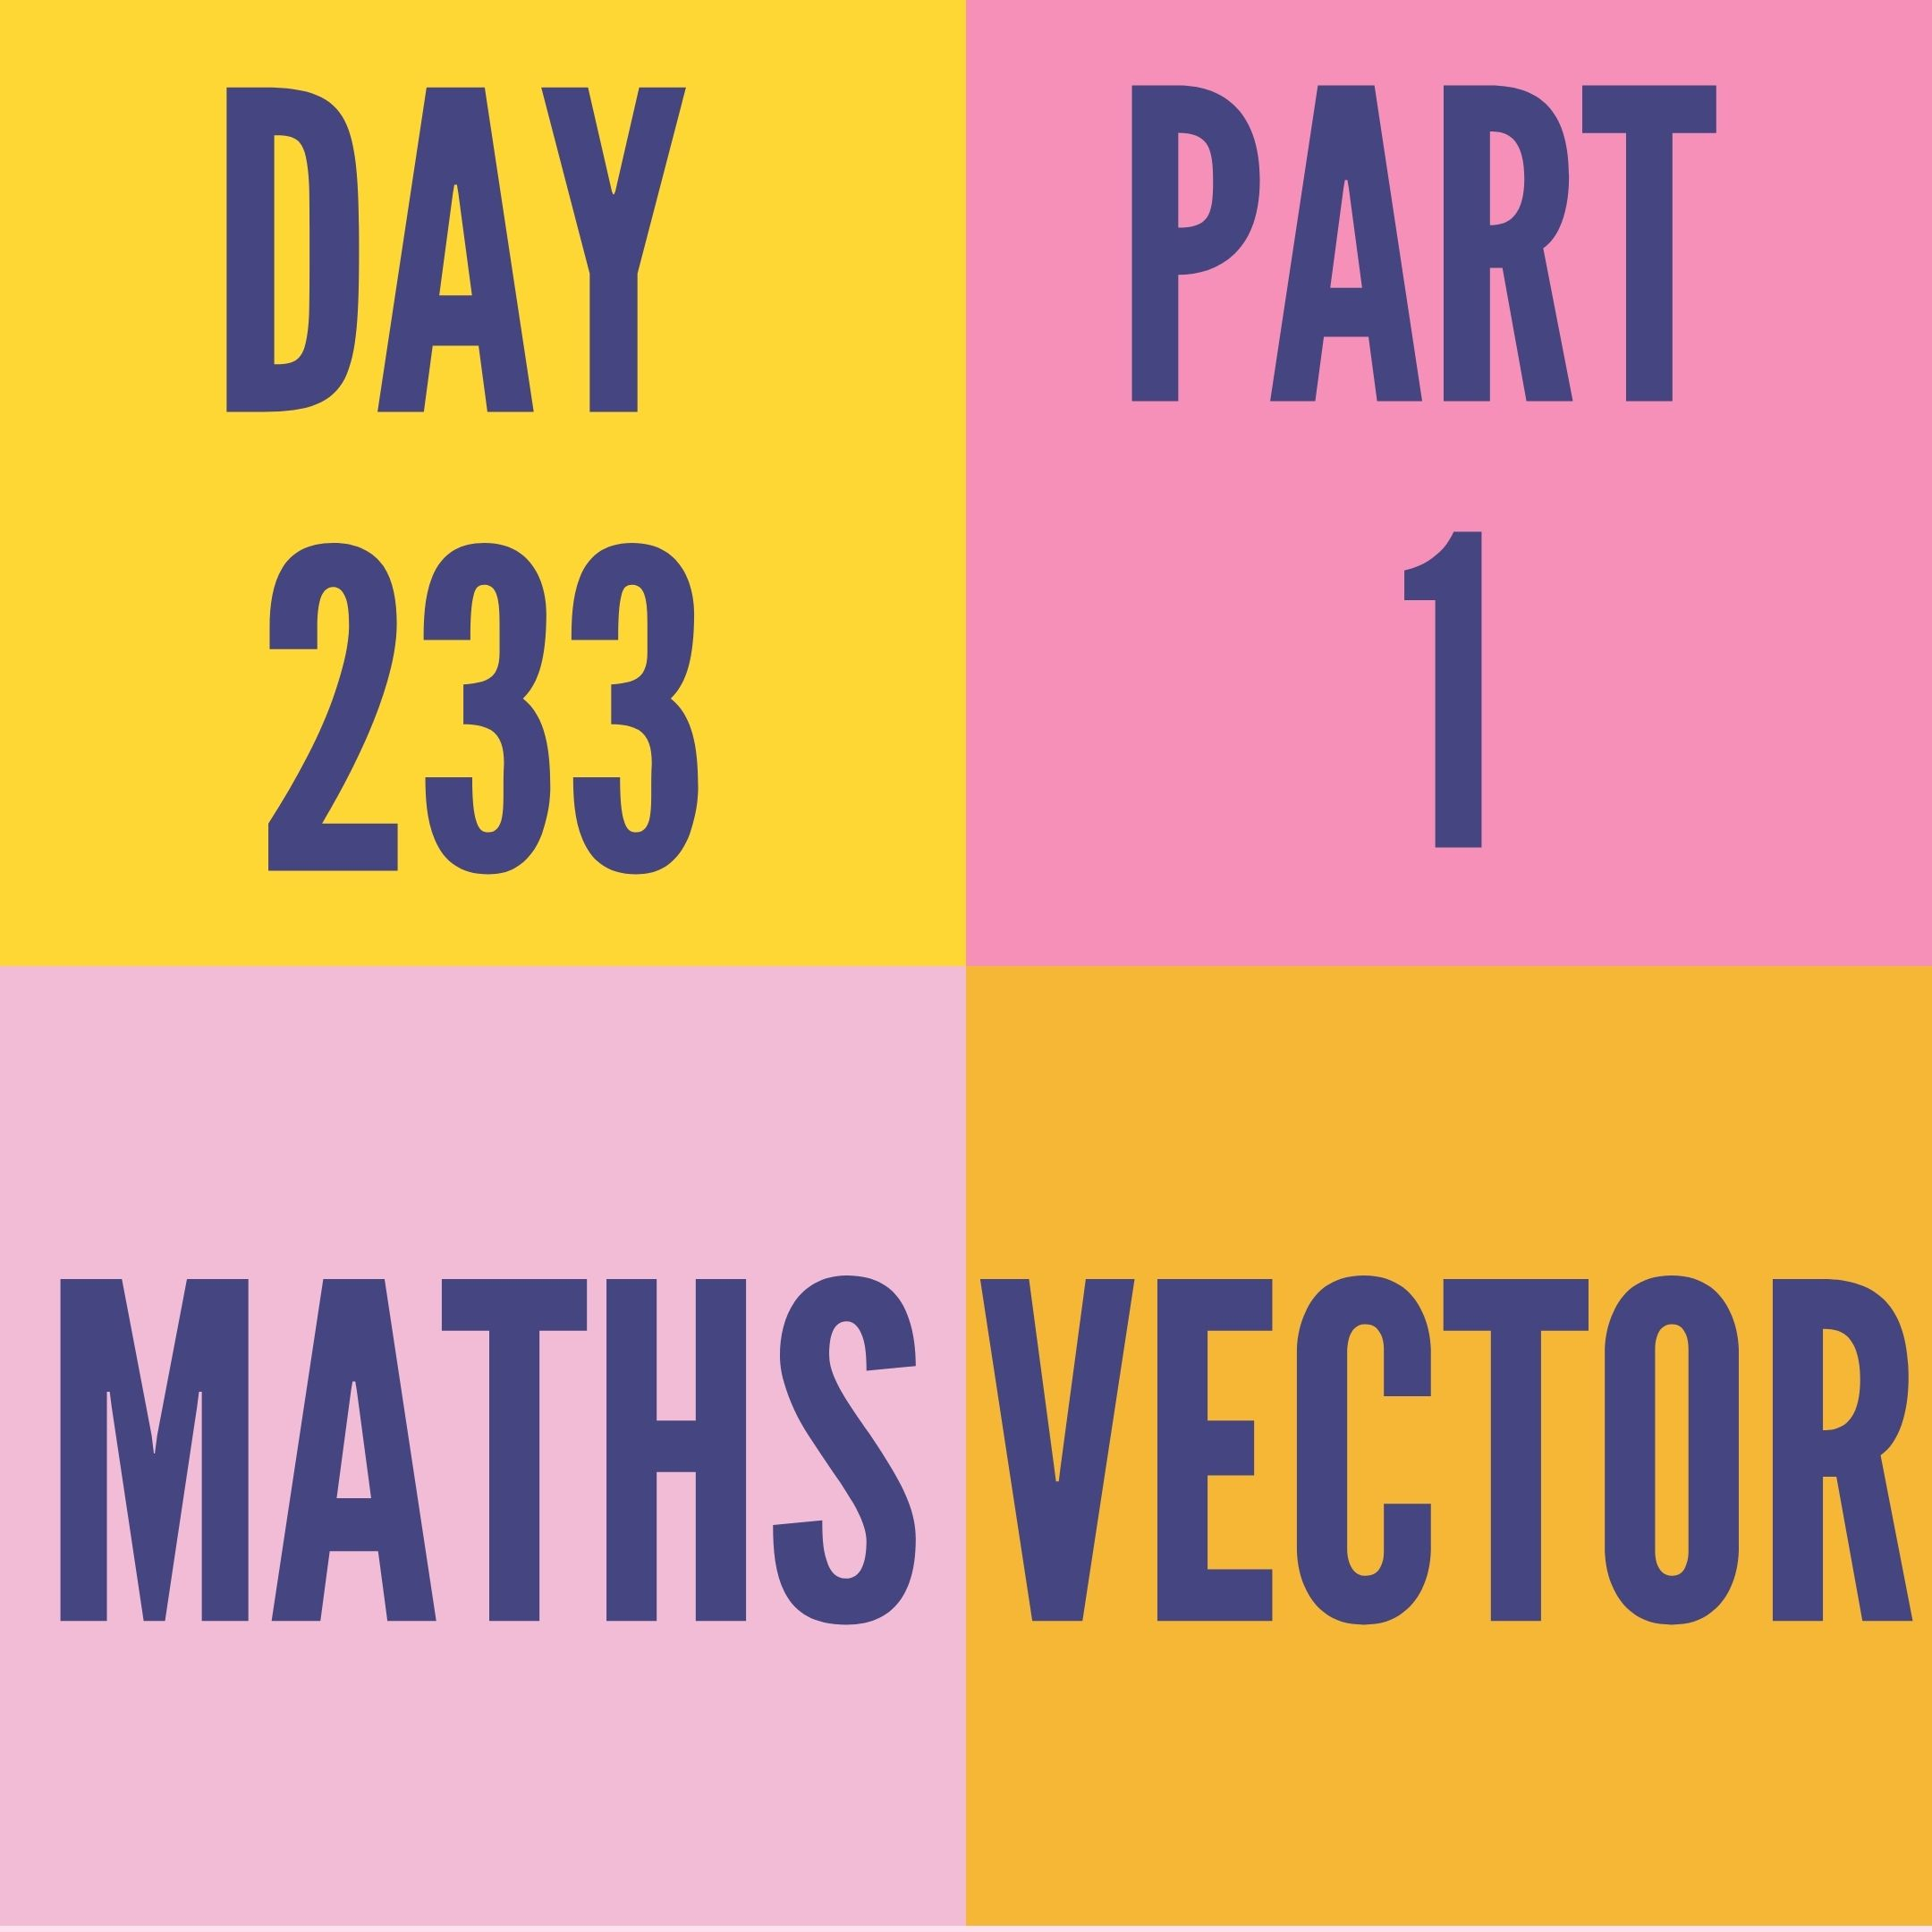 DAY-233 PART-1 VECTOR